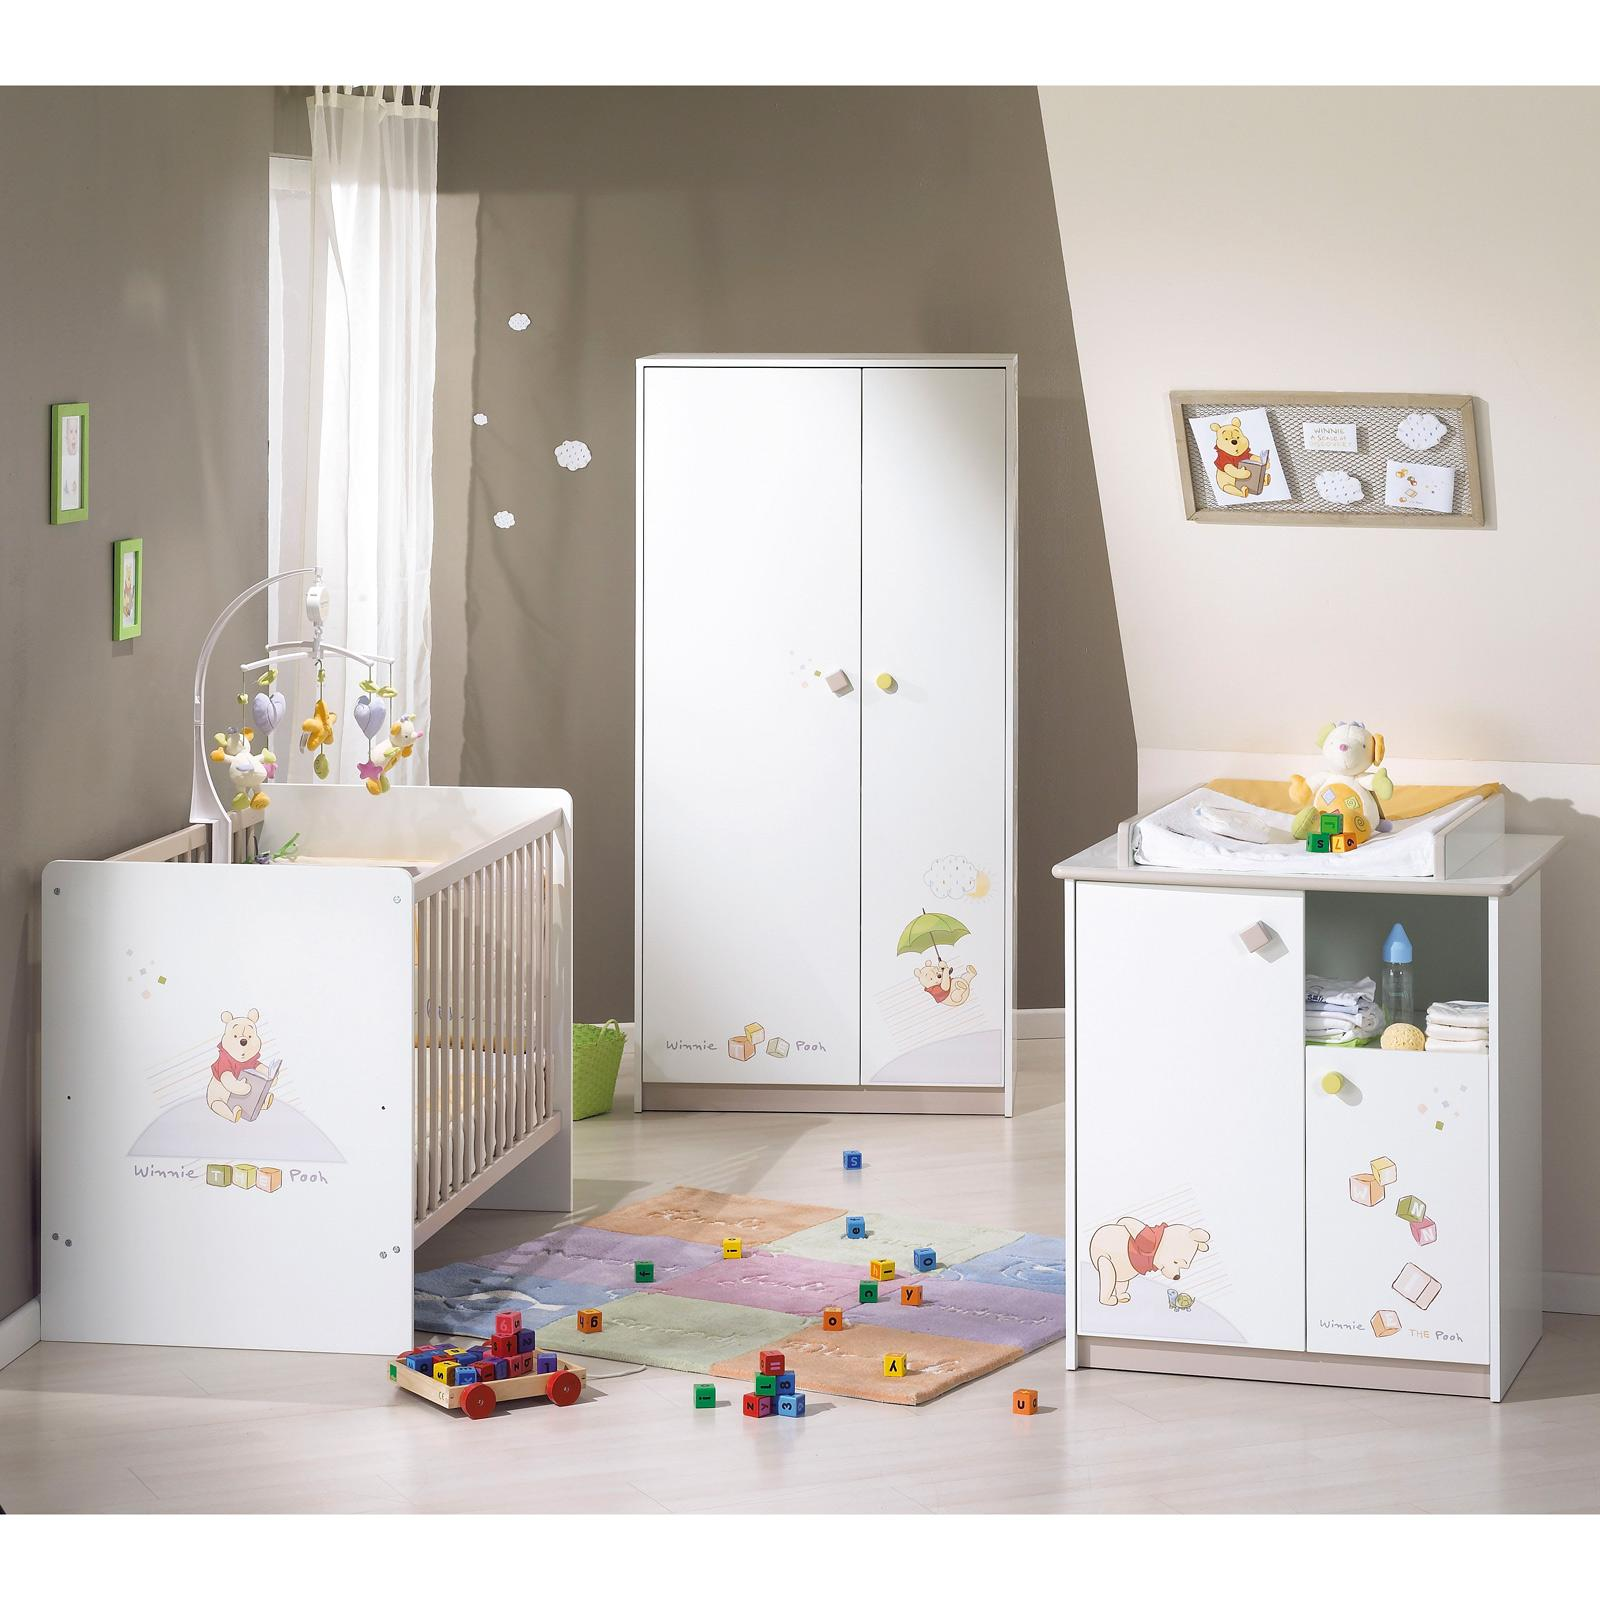 Decoration chambre winnie l ourson pas cher for Idee deco pas cher maison